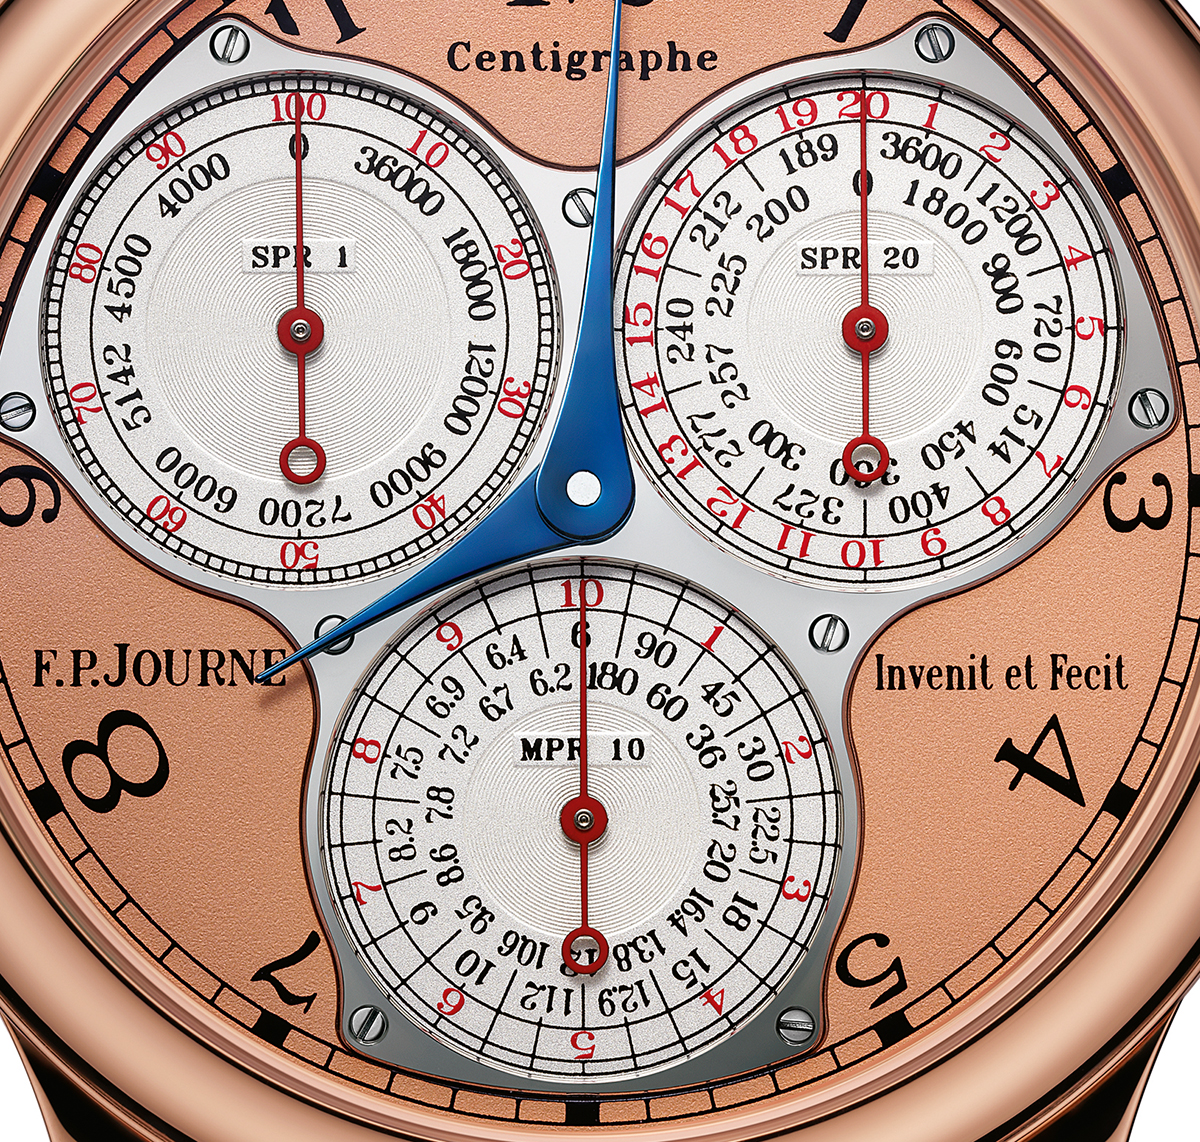 The three chronograph dials, for one second (top left), 20 seconds (top right), 10 minutes (bottom)